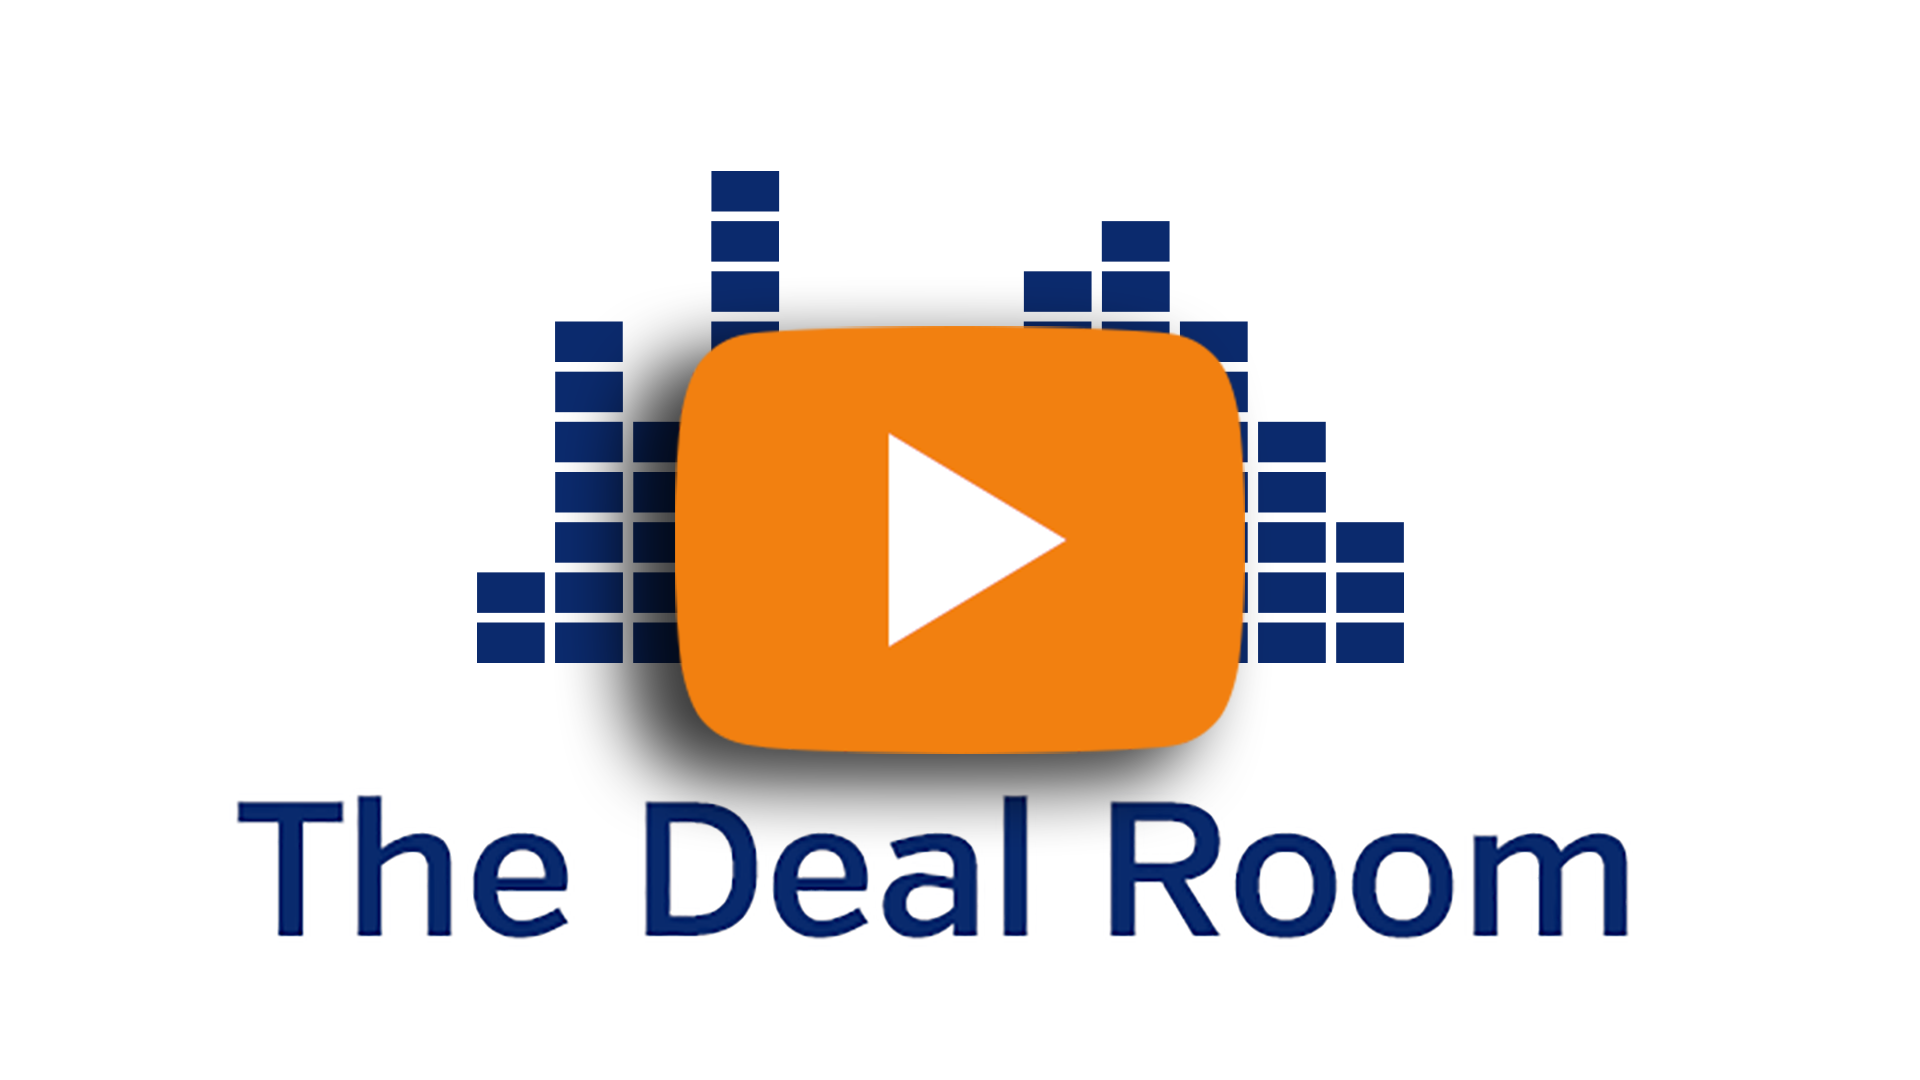 Video introducing The Deal Room